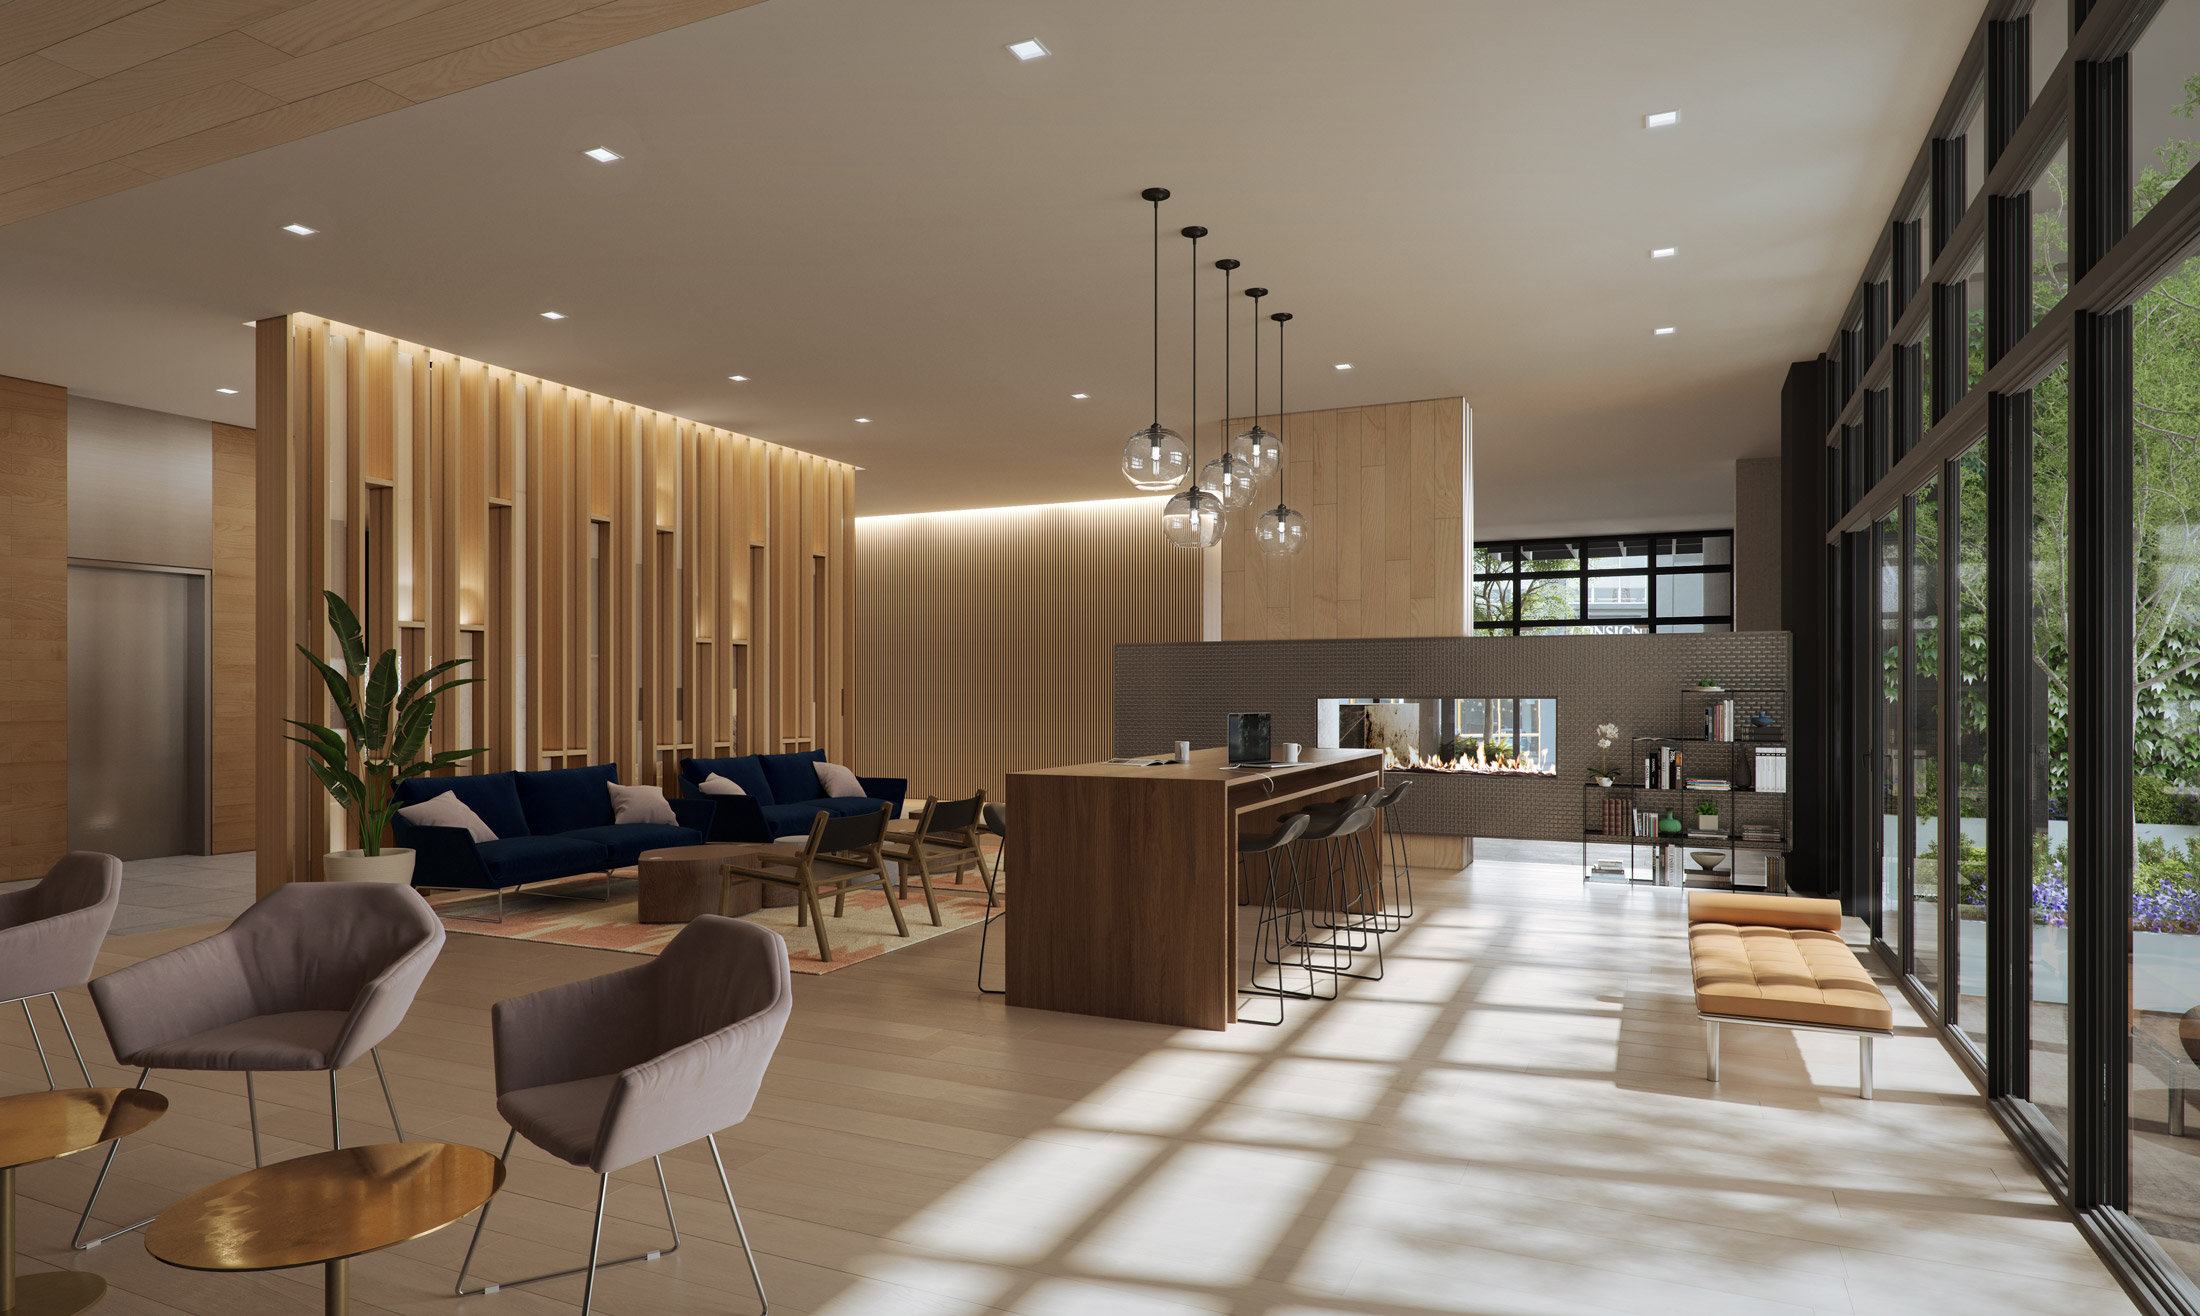 Architectural Rendering of the lobby lounge of the The Austin project located in San Francisco, California